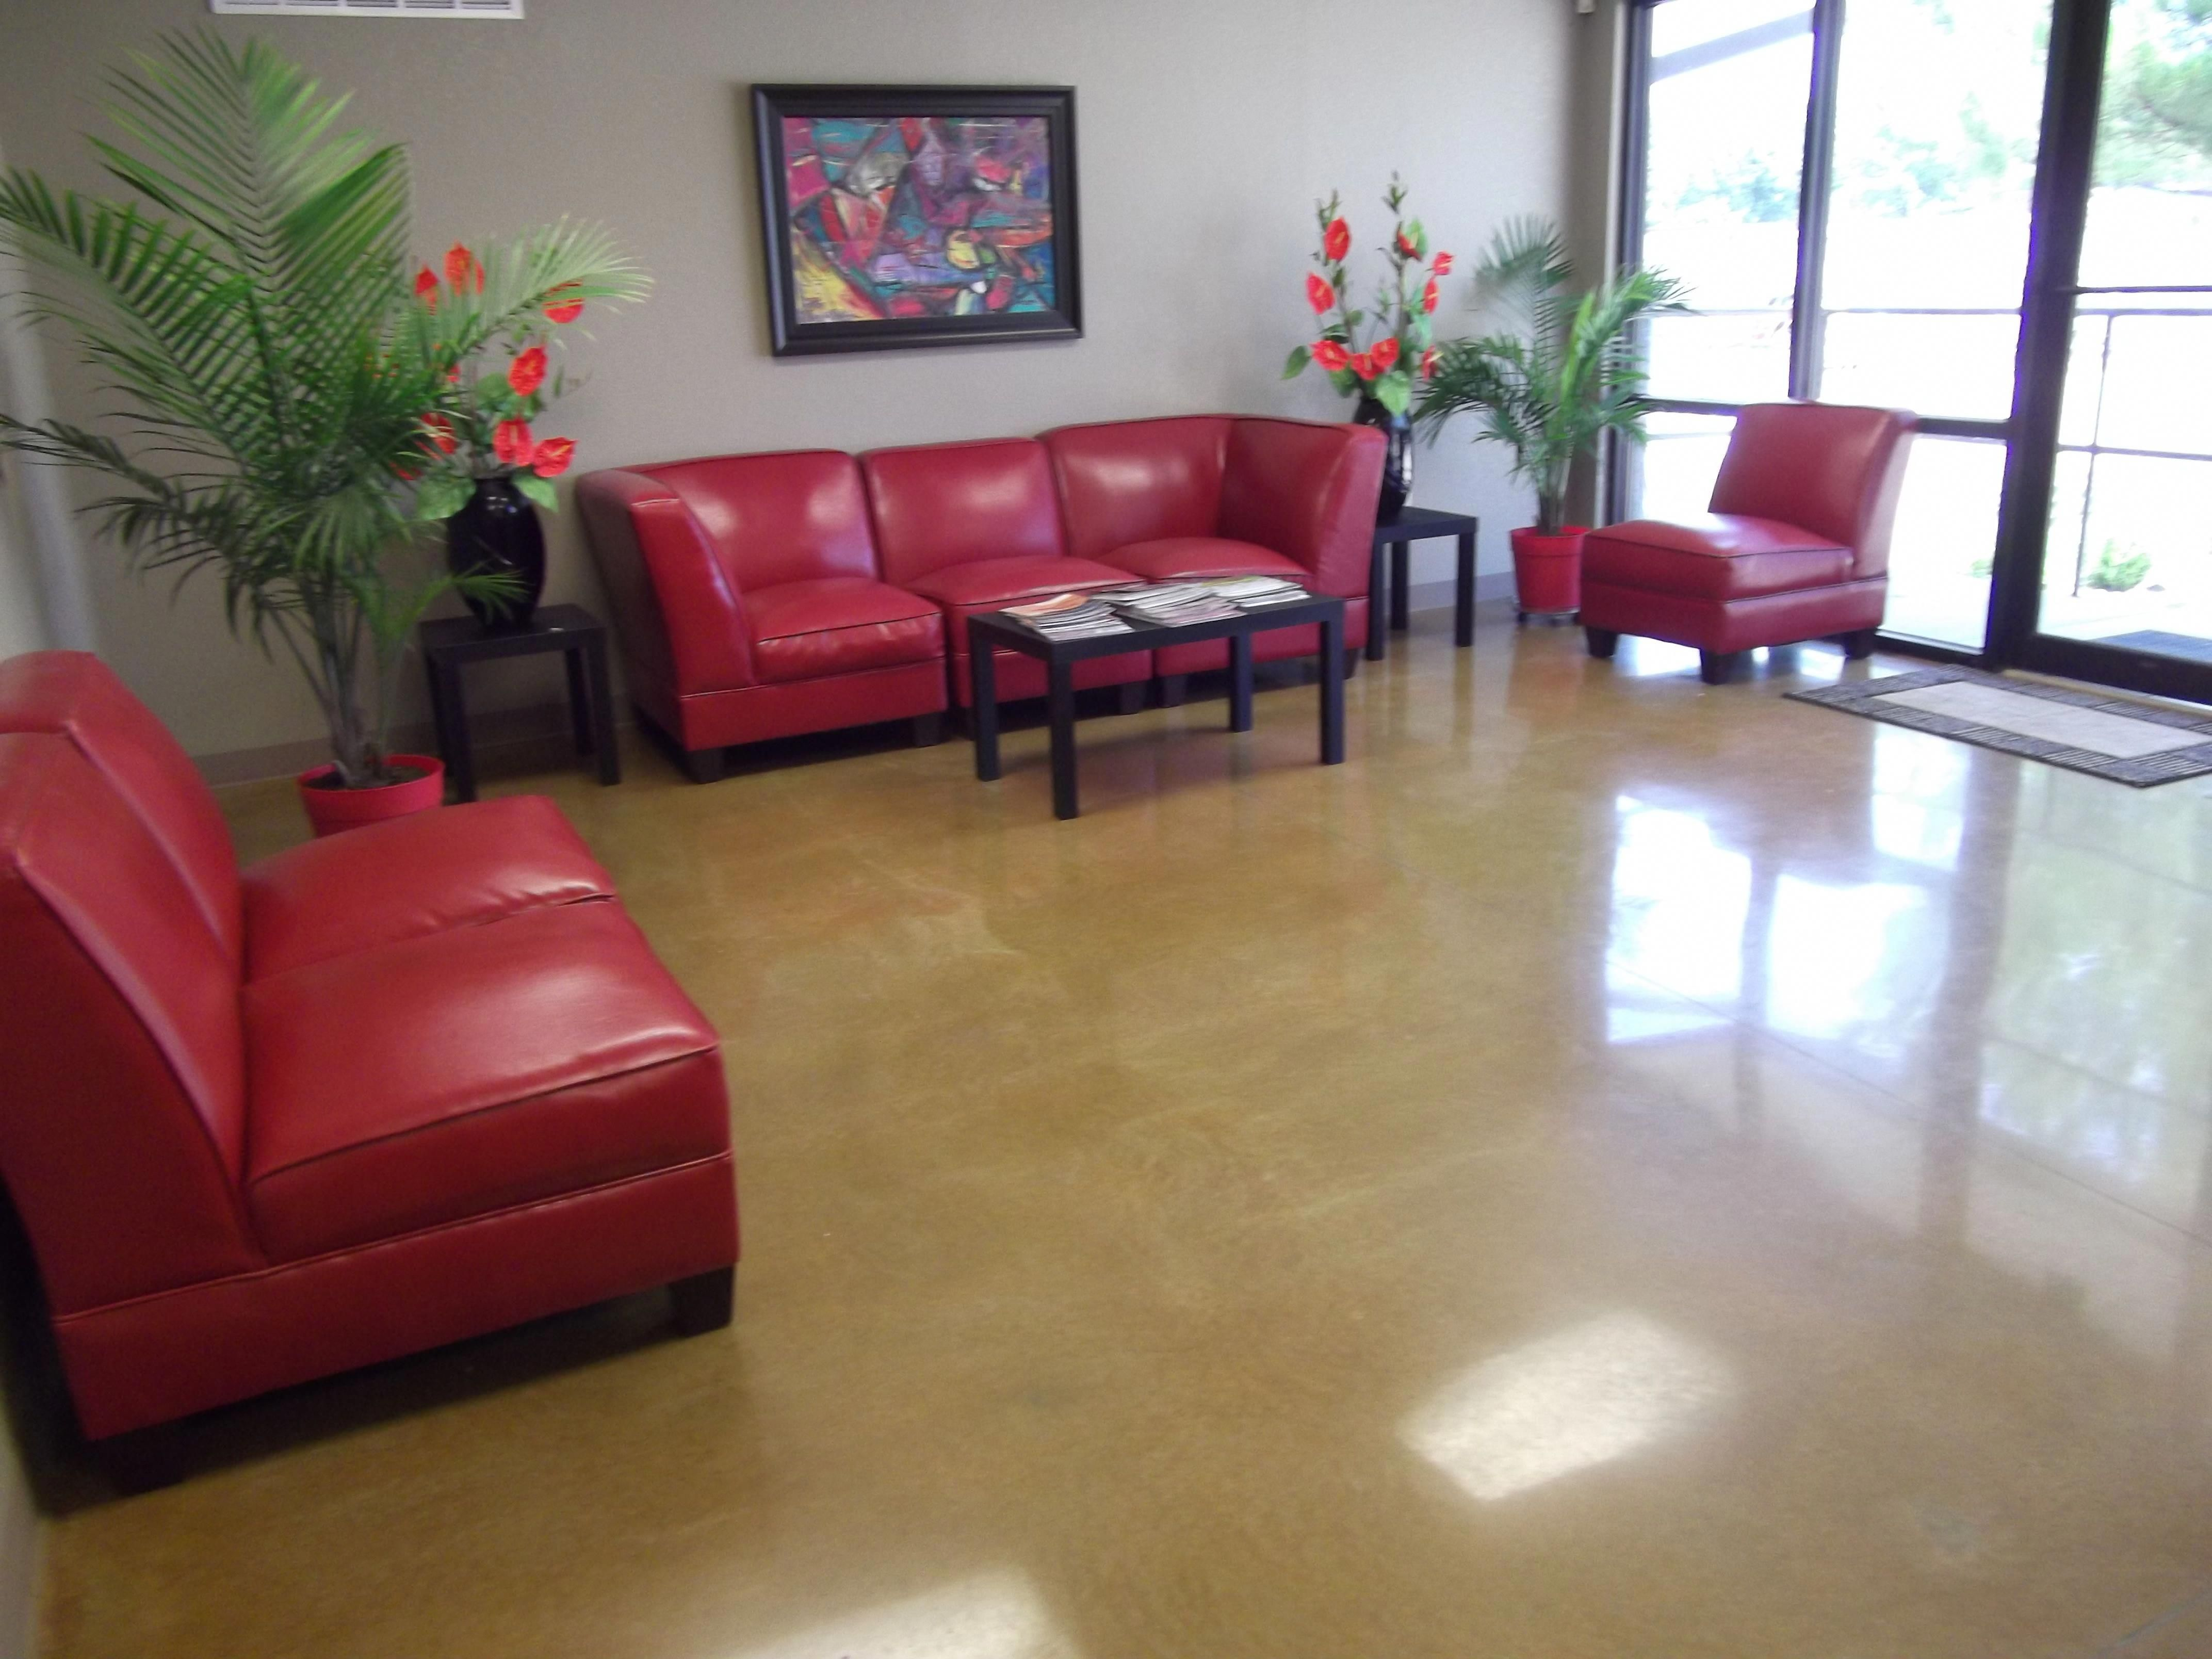 Decorative Painting Concrete Floors With Epoxy Design Combine With Red Sofa For Livingroo Painted Concrete Floors Concrete Floors Living Room Living Room Paint #stained #concrete #floors #living #room